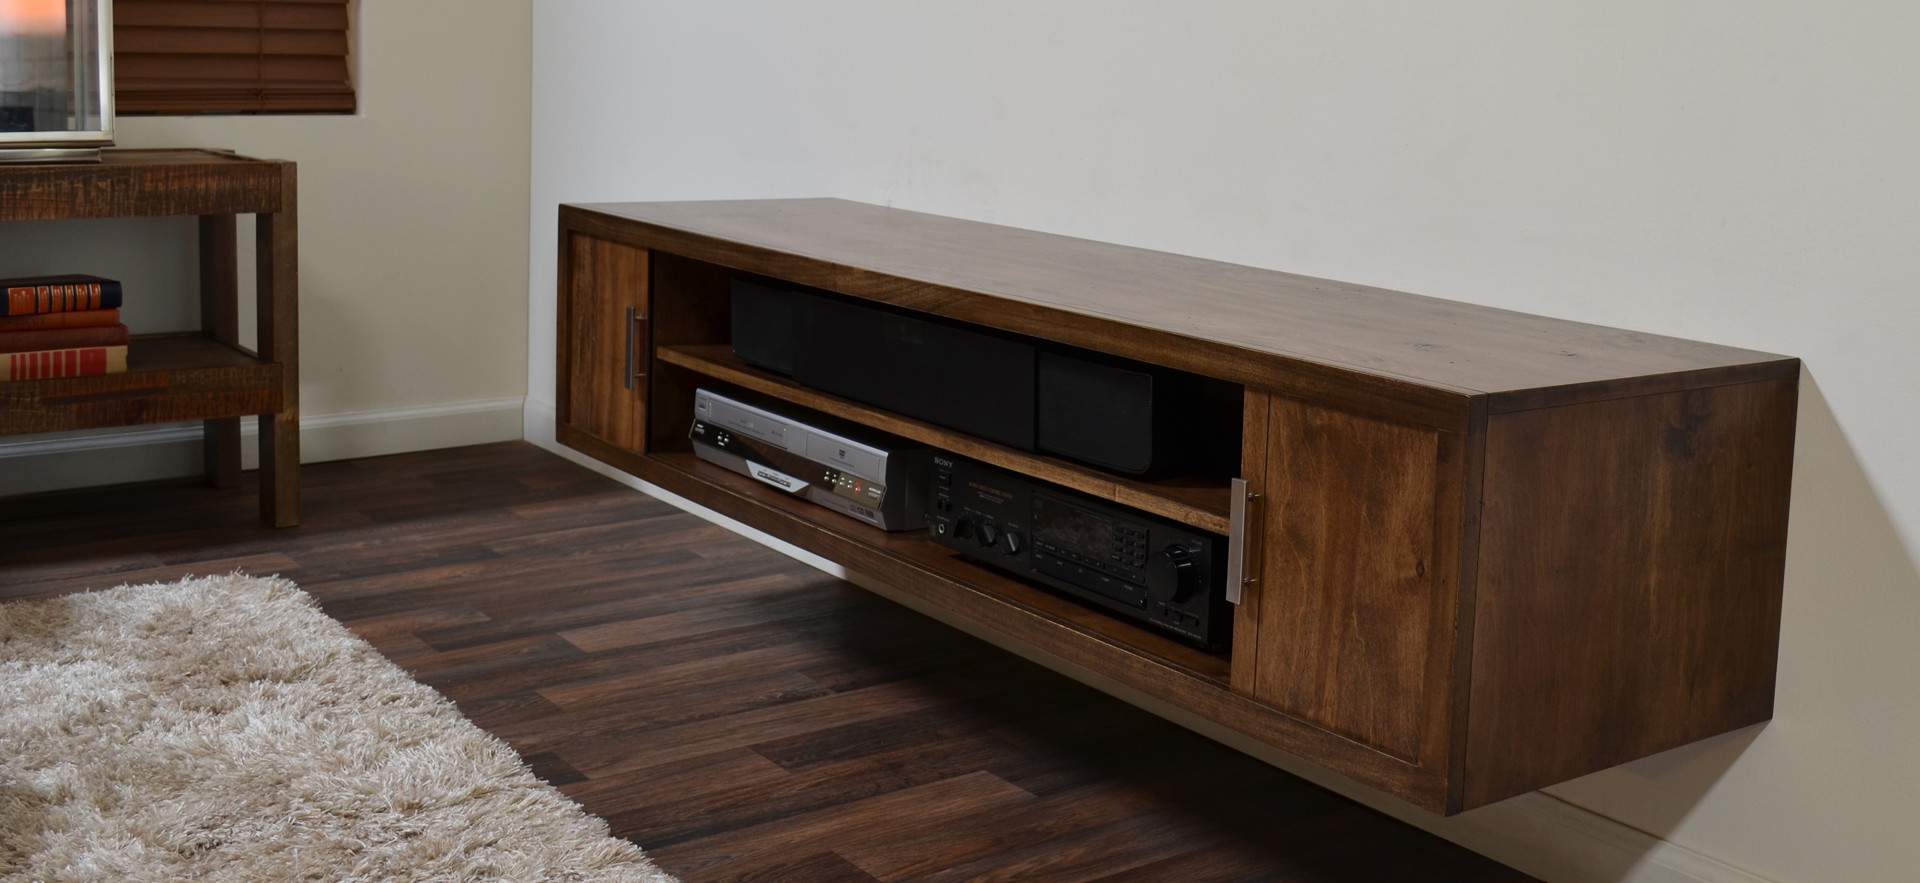 Floating Tv Cabinet Floating Media Console A Way To Display Your Tv With